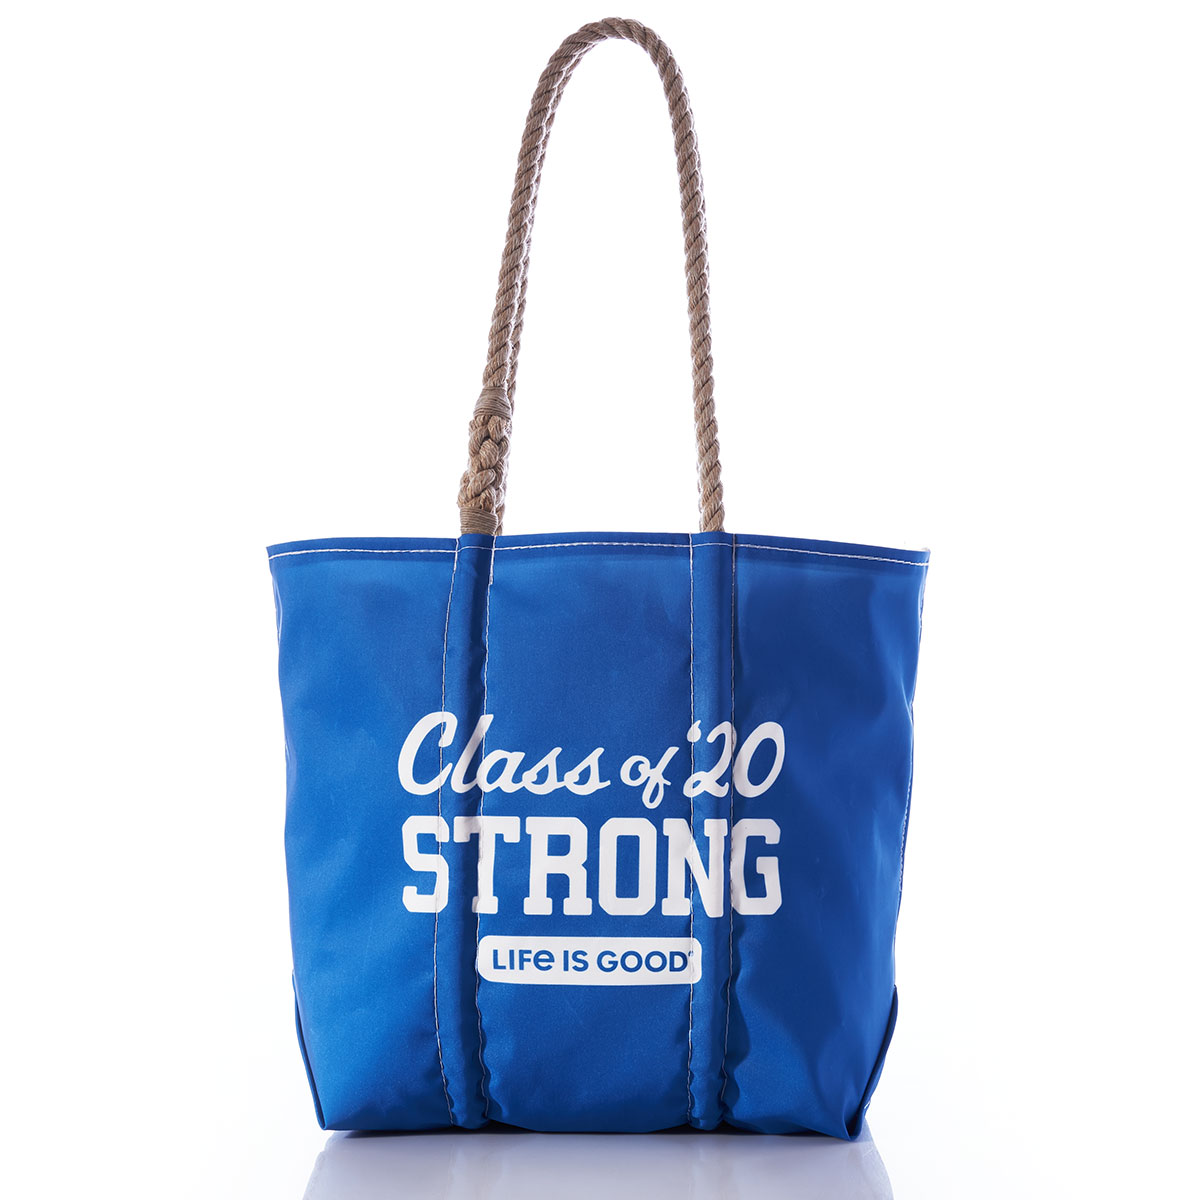 Class of '20 Strong Life is Good Tote